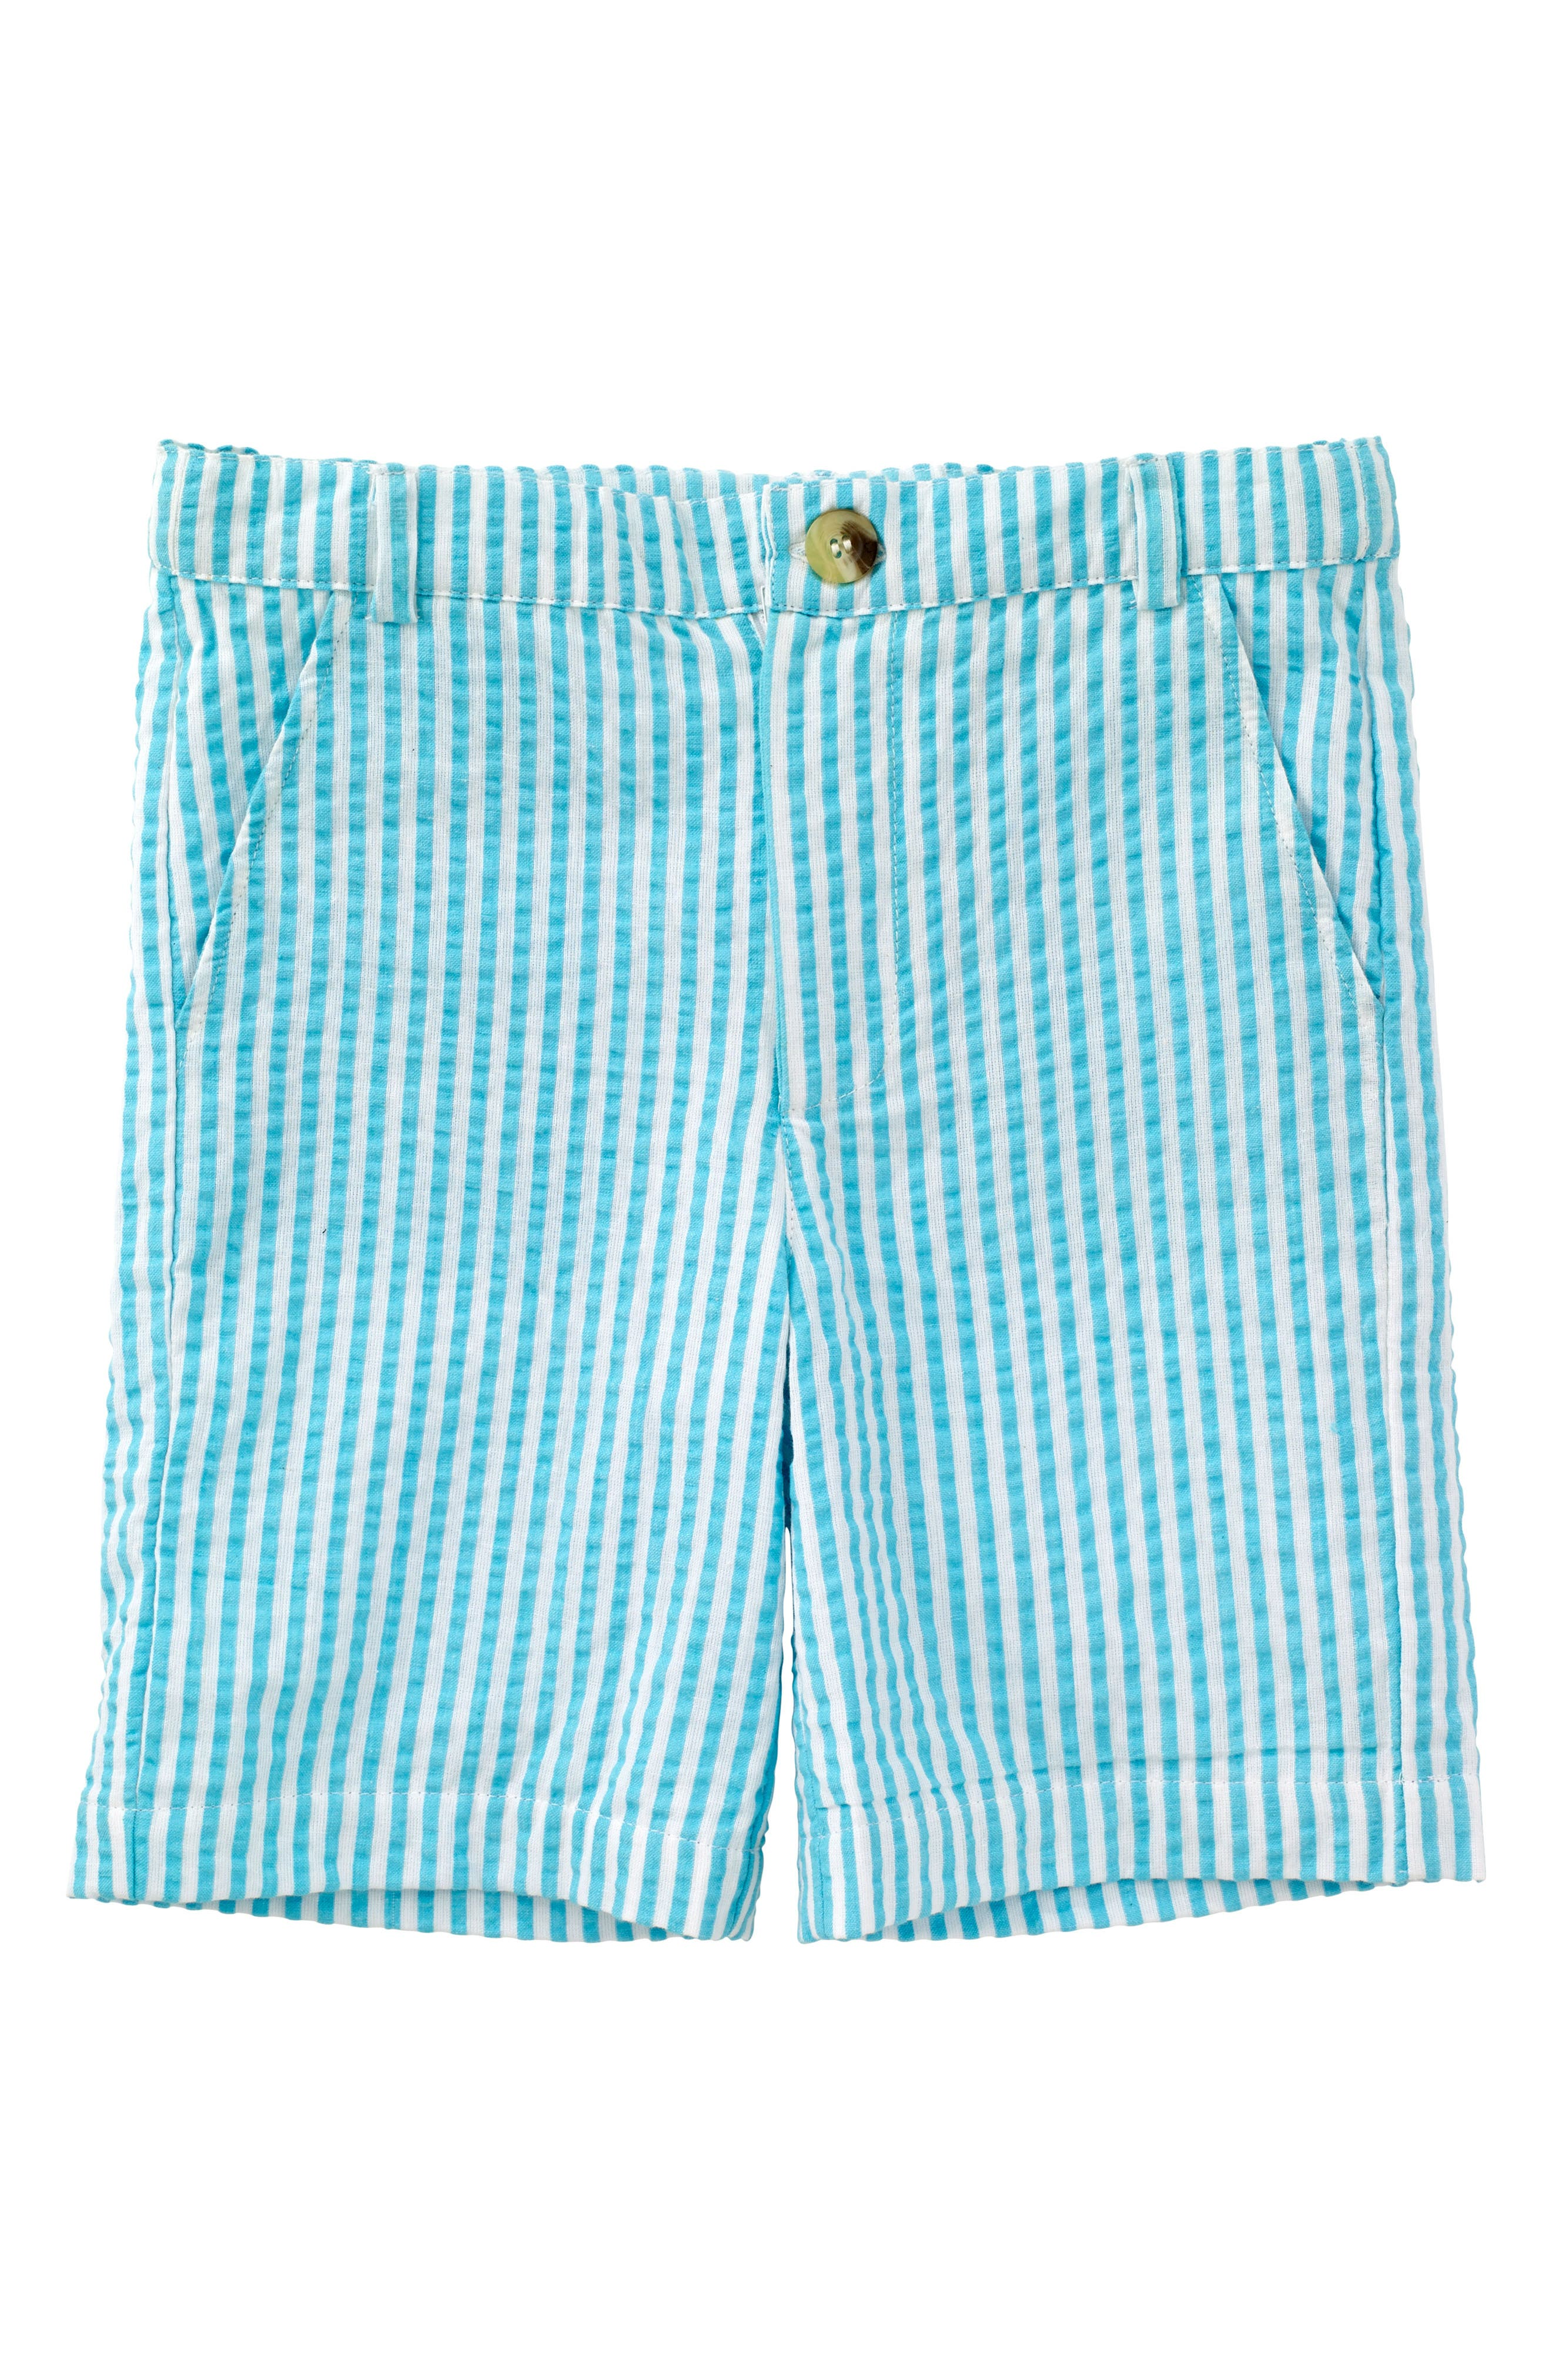 Masalababy Crosby Stripe Shorts,                         Main,                         color, Turquoise